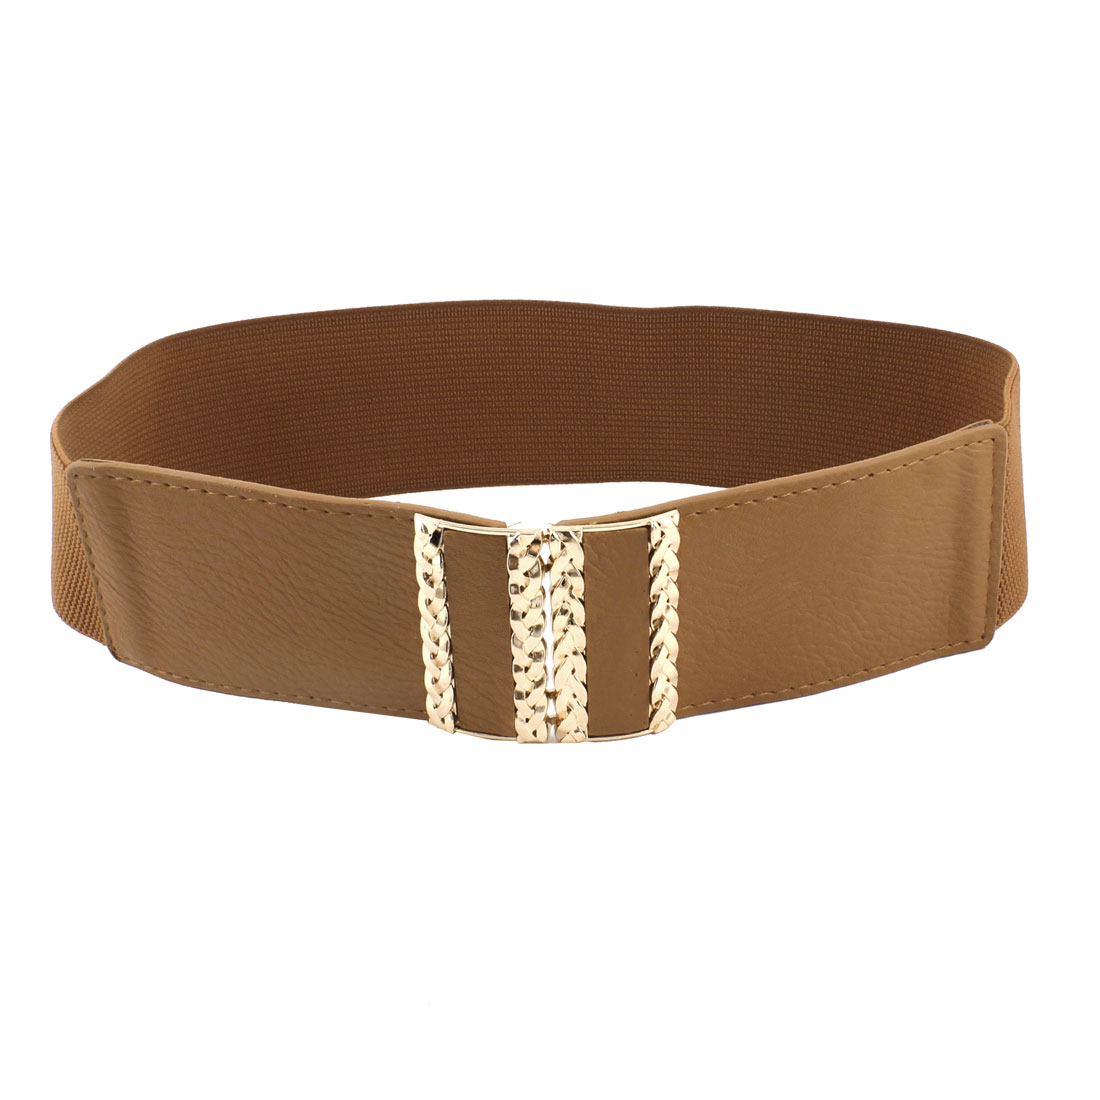 Rectangle Interlocking Buckle Faux Leather Stretchy Cinch Belt Brown for Women